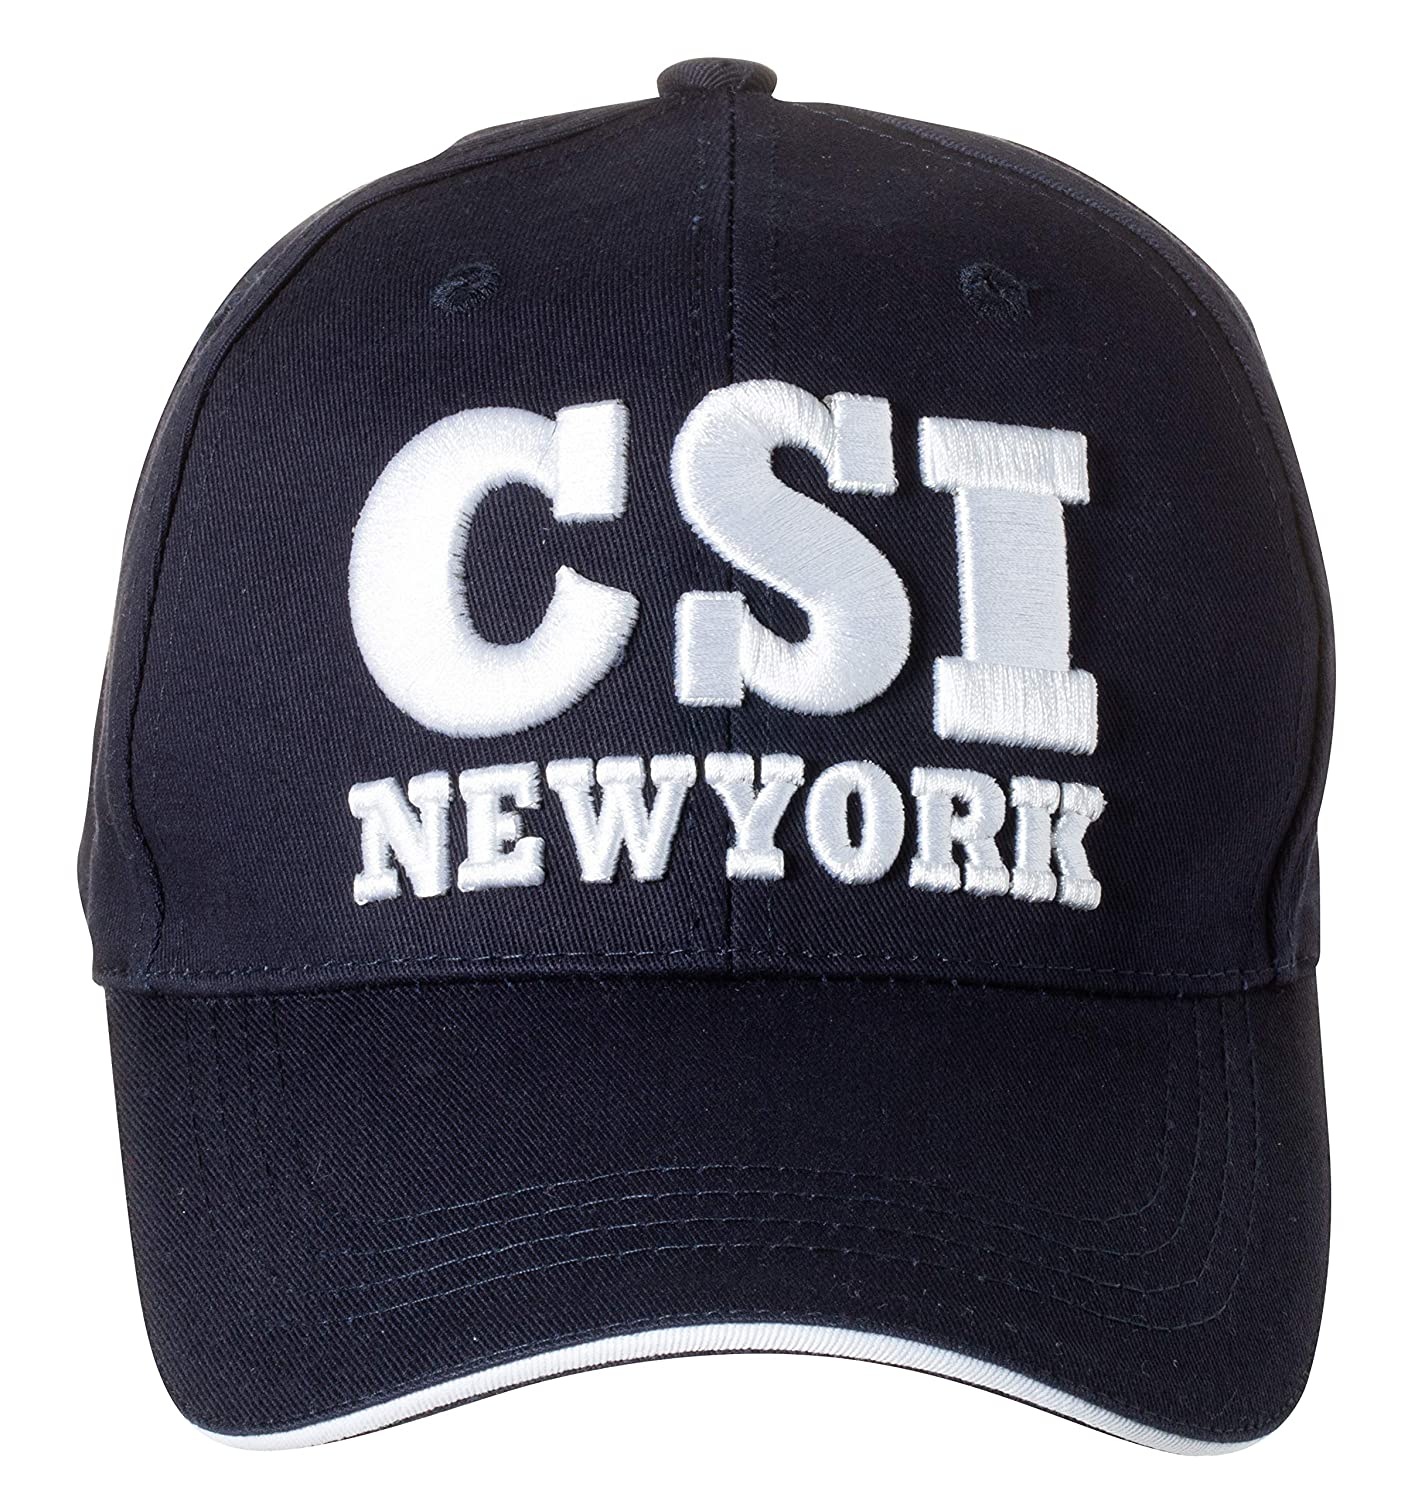 CSI Logo Law Enforcement Baseball Cap Hat Navy Blue Officially Licensed by NYC